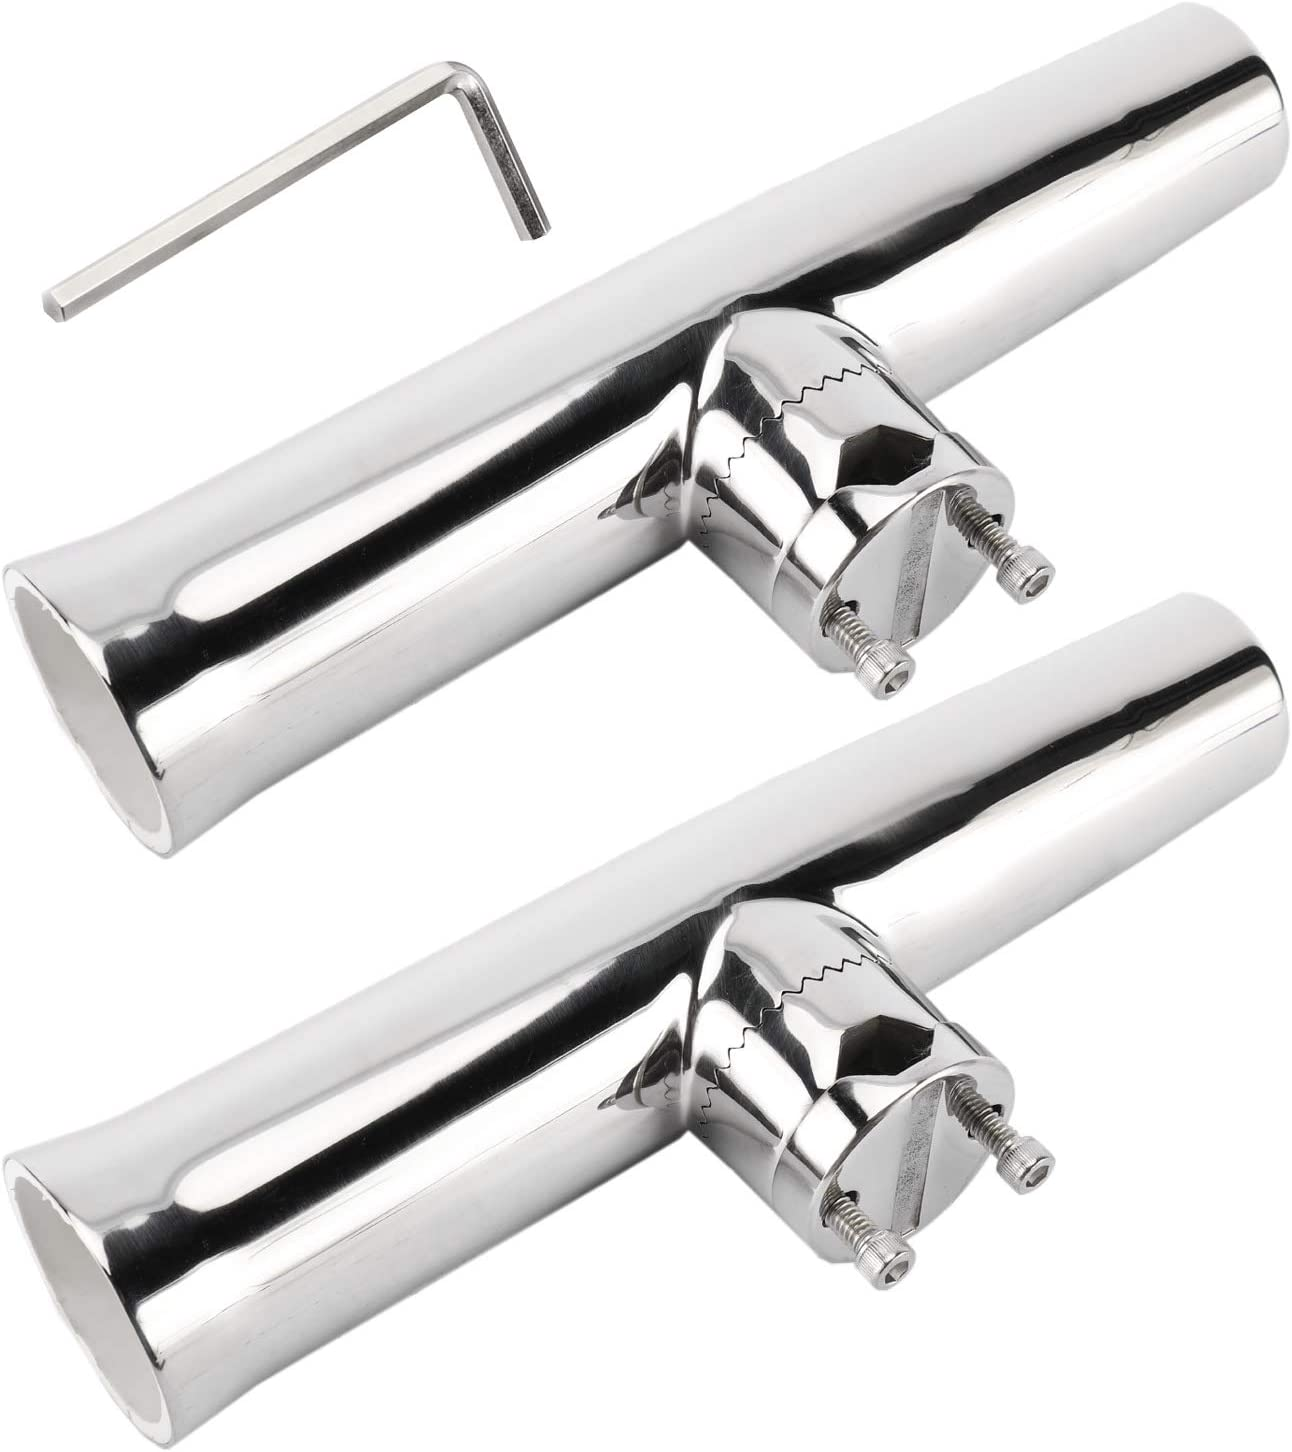 """1x Stainless Steel Rail Mount Clamp on Fishing Rod Holder for Rails 1-1//4/"""" to 2/"""""""